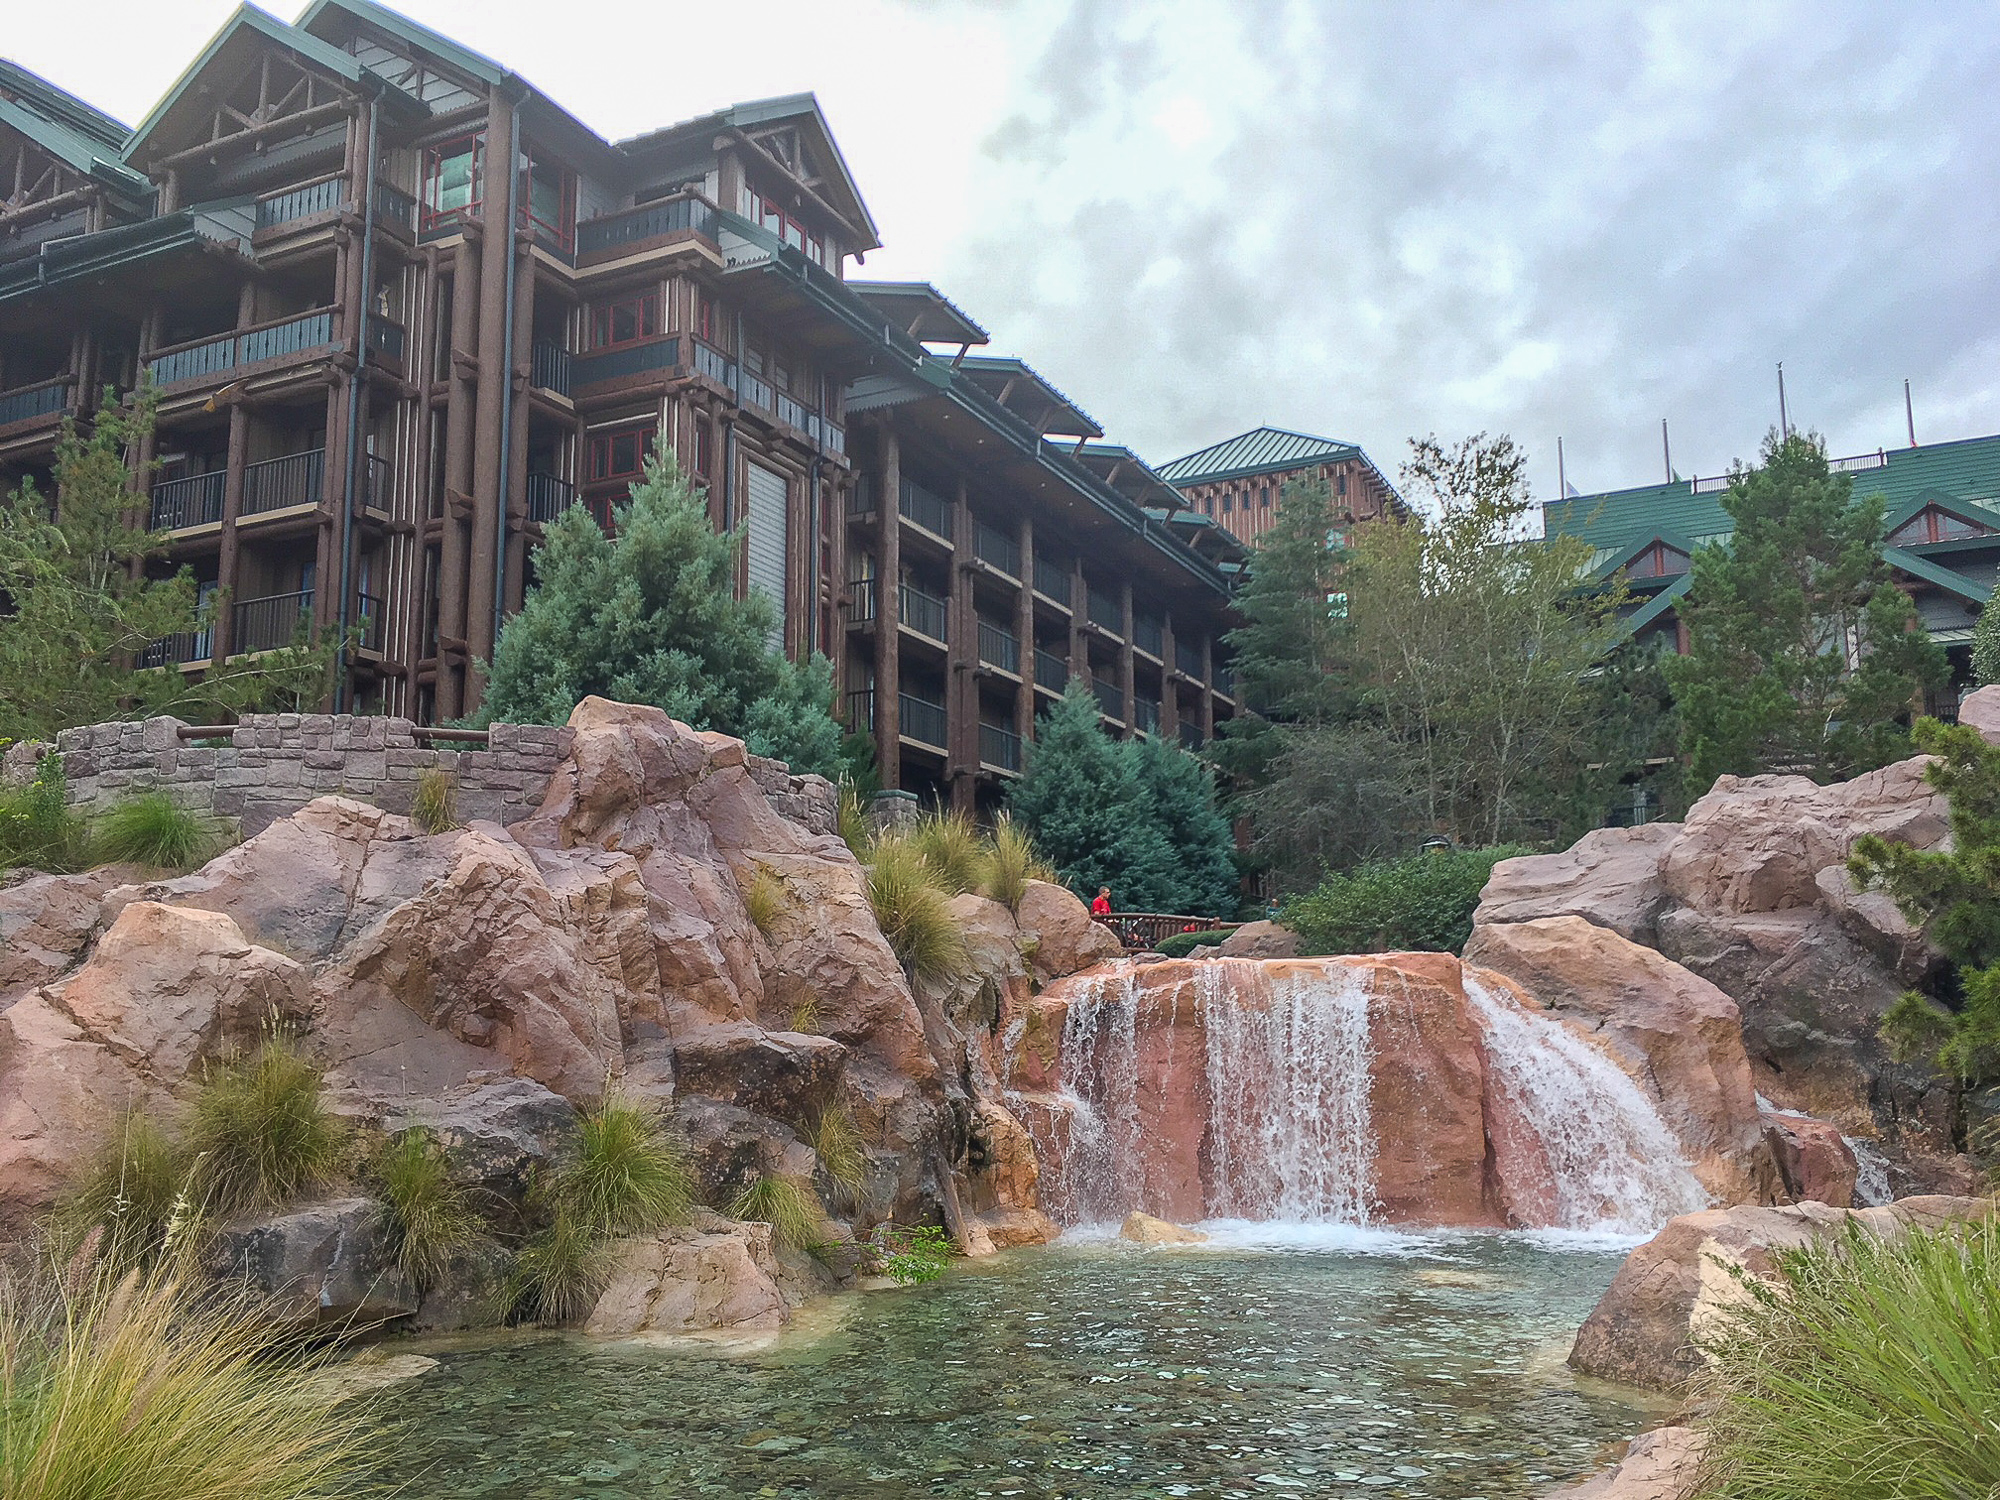 Disney's Wilderness Lodge pool